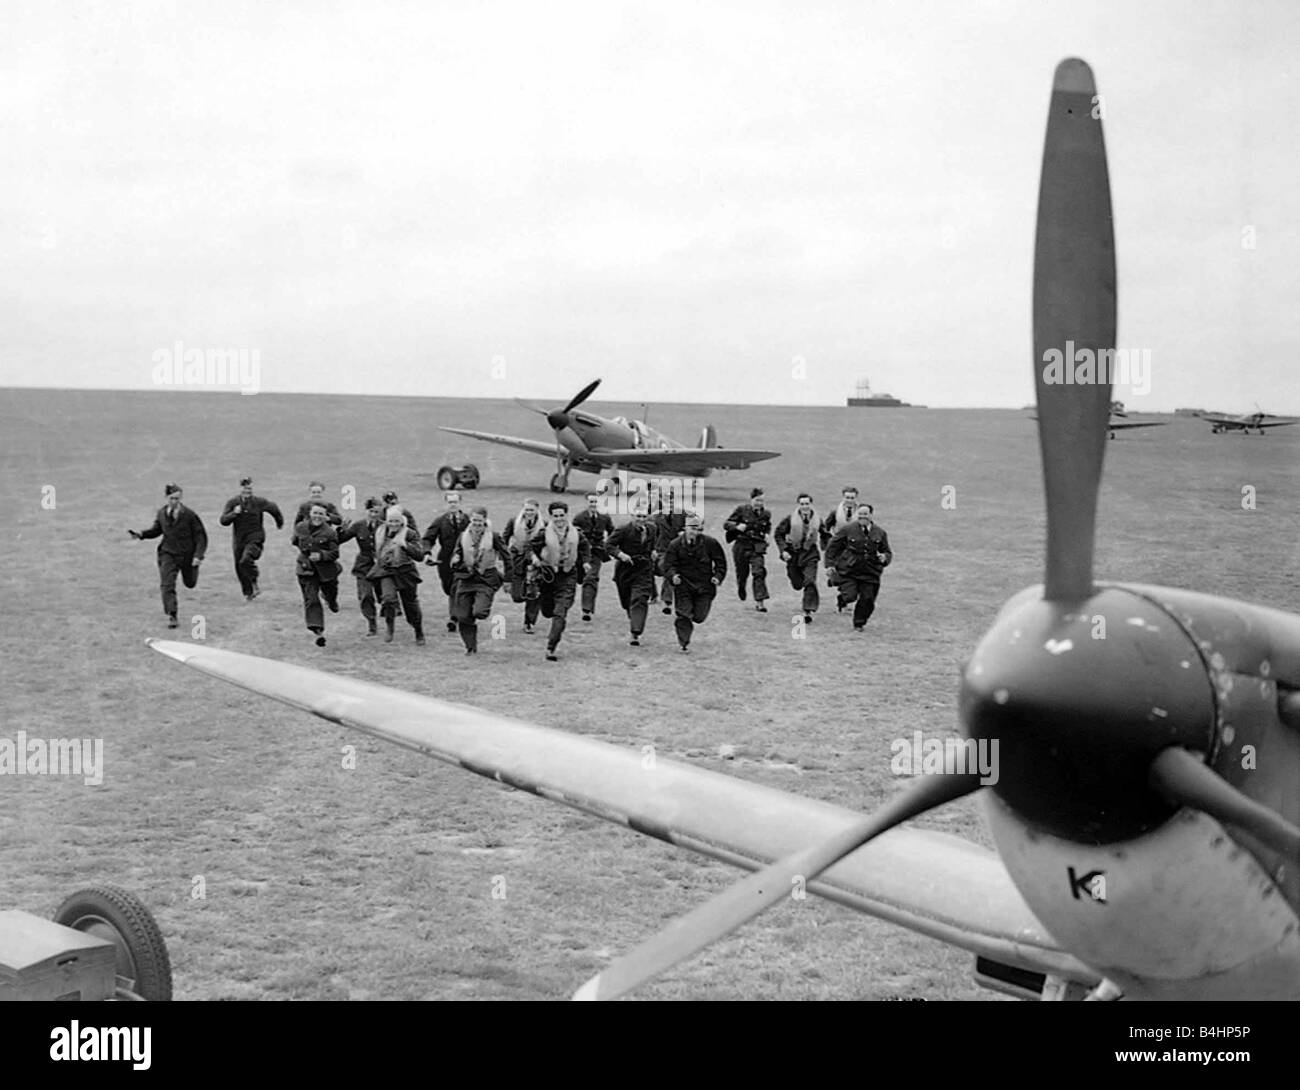 RAF Pilots scramble during th Battle of Britain Conflict World War Two Pilots running Aircraft Fighter Supermarine - Stock Image